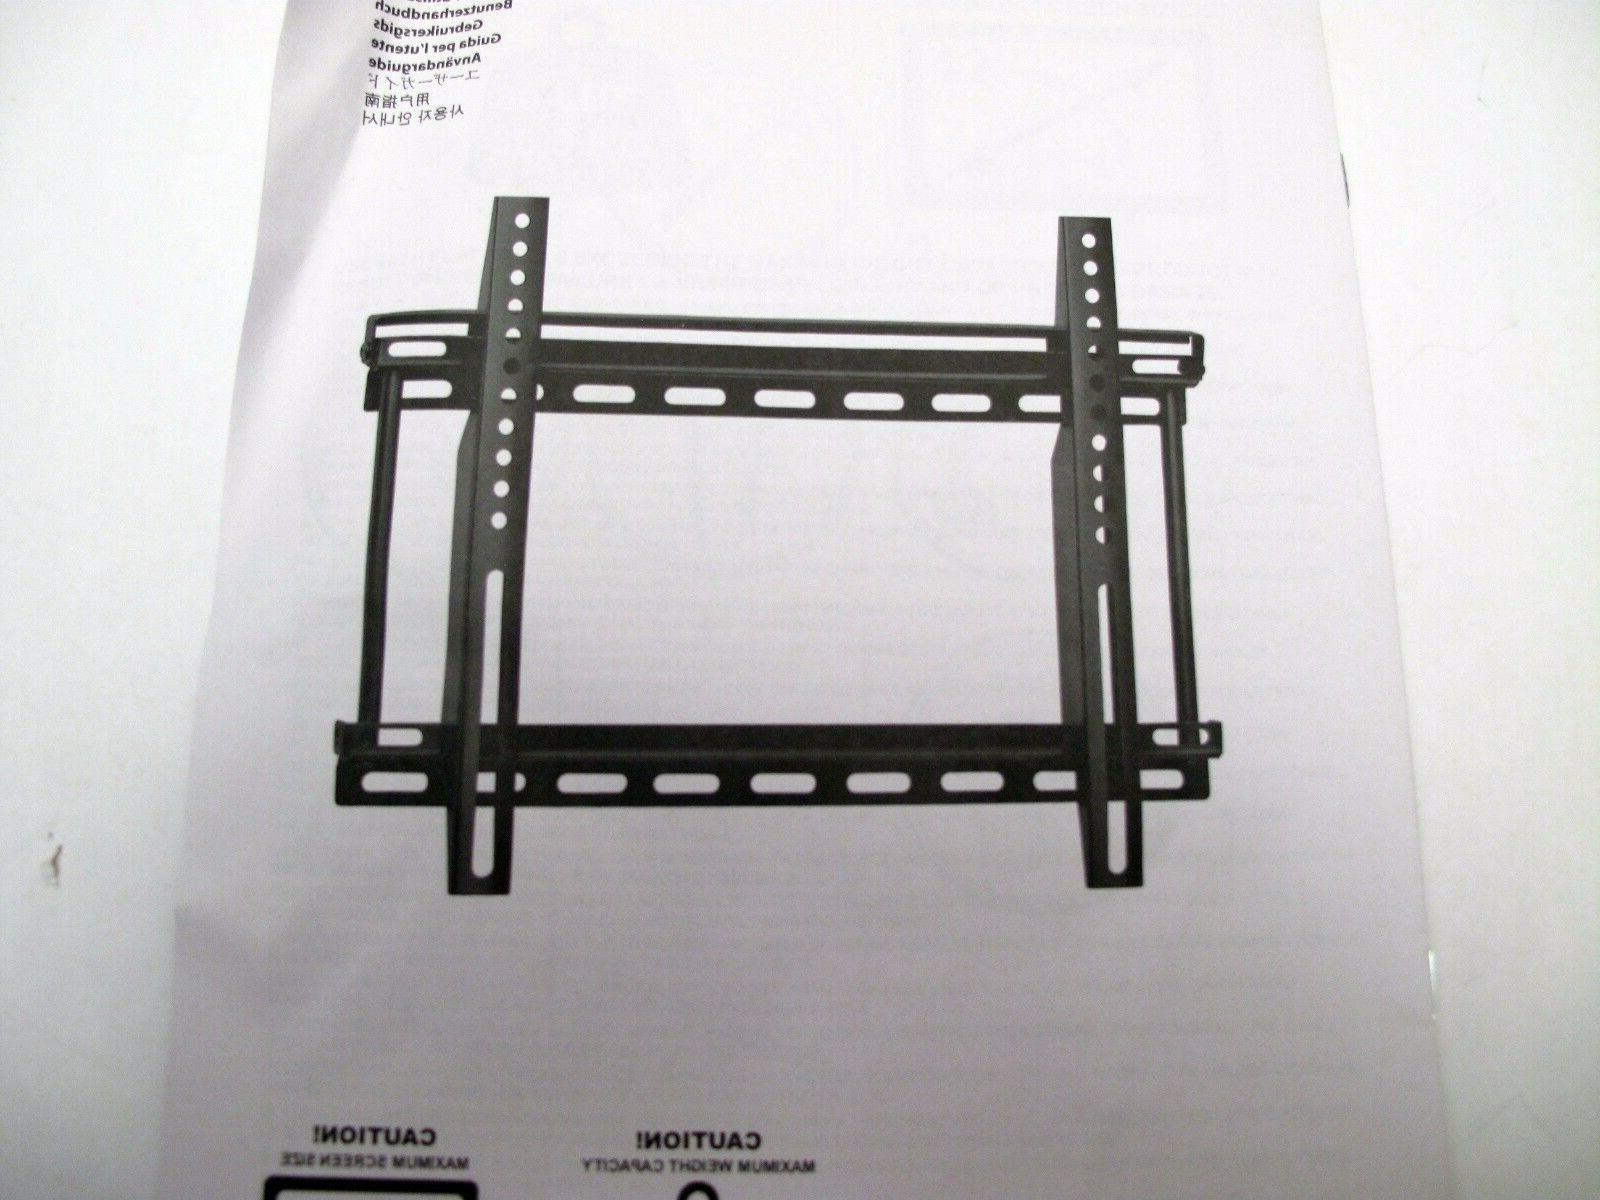 ERGOTRON - Wall Mount For TV/Flat Panel Monitor - Up to 42""